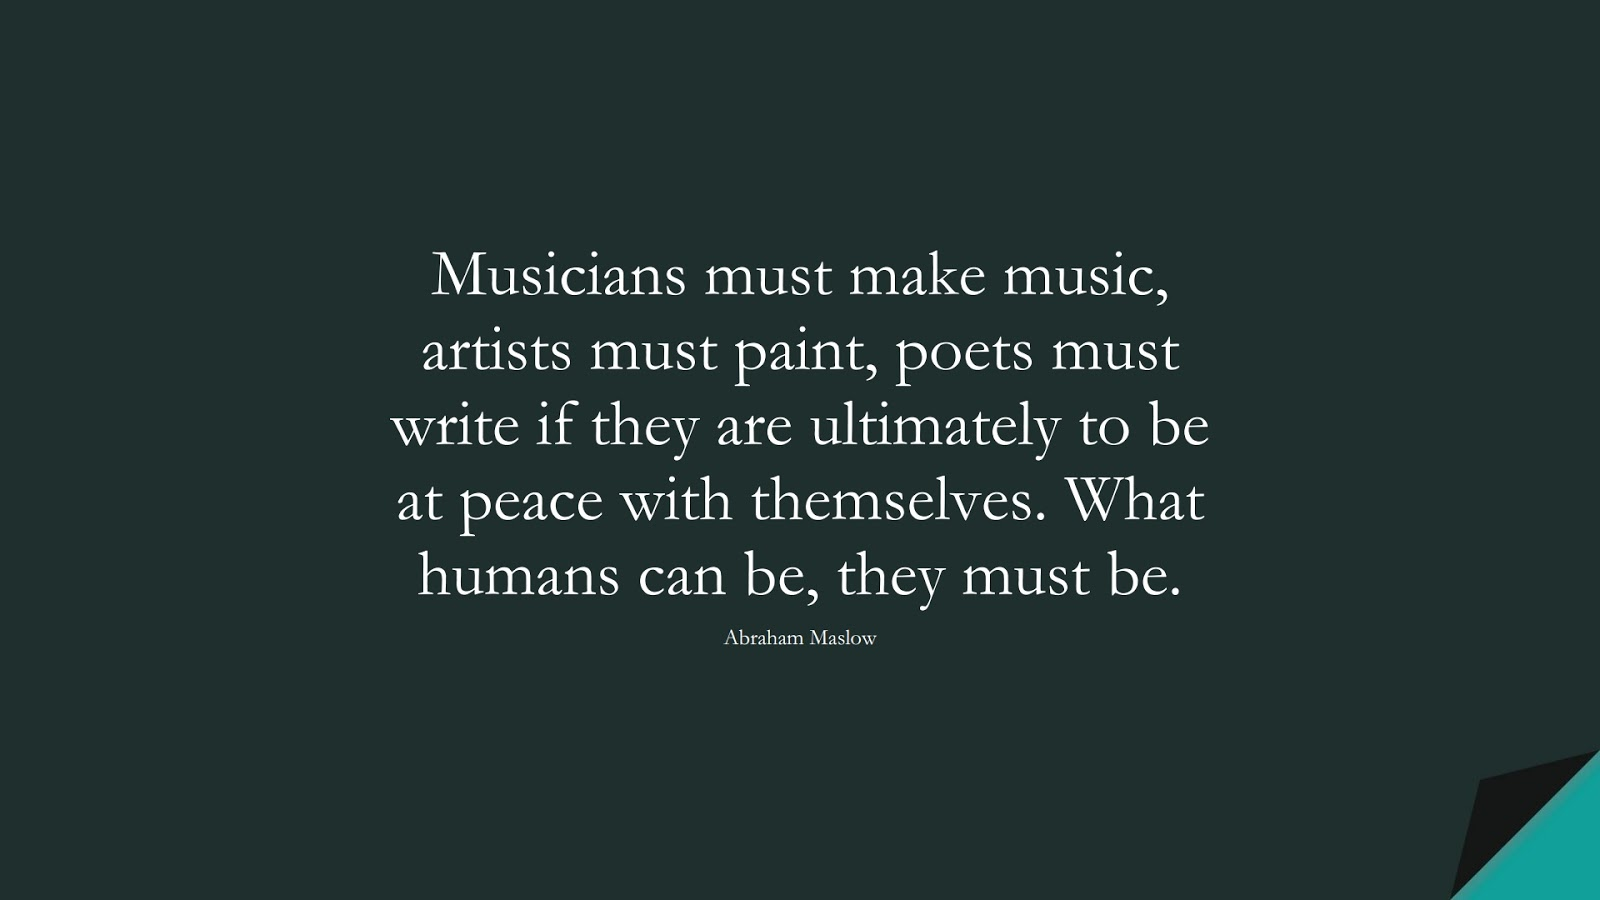 Musicians must make music, artists must paint, poets must write if they are ultimately to be at peace with themselves. What humans can be, they must be. (Abraham Maslow);  #LifeQuotes